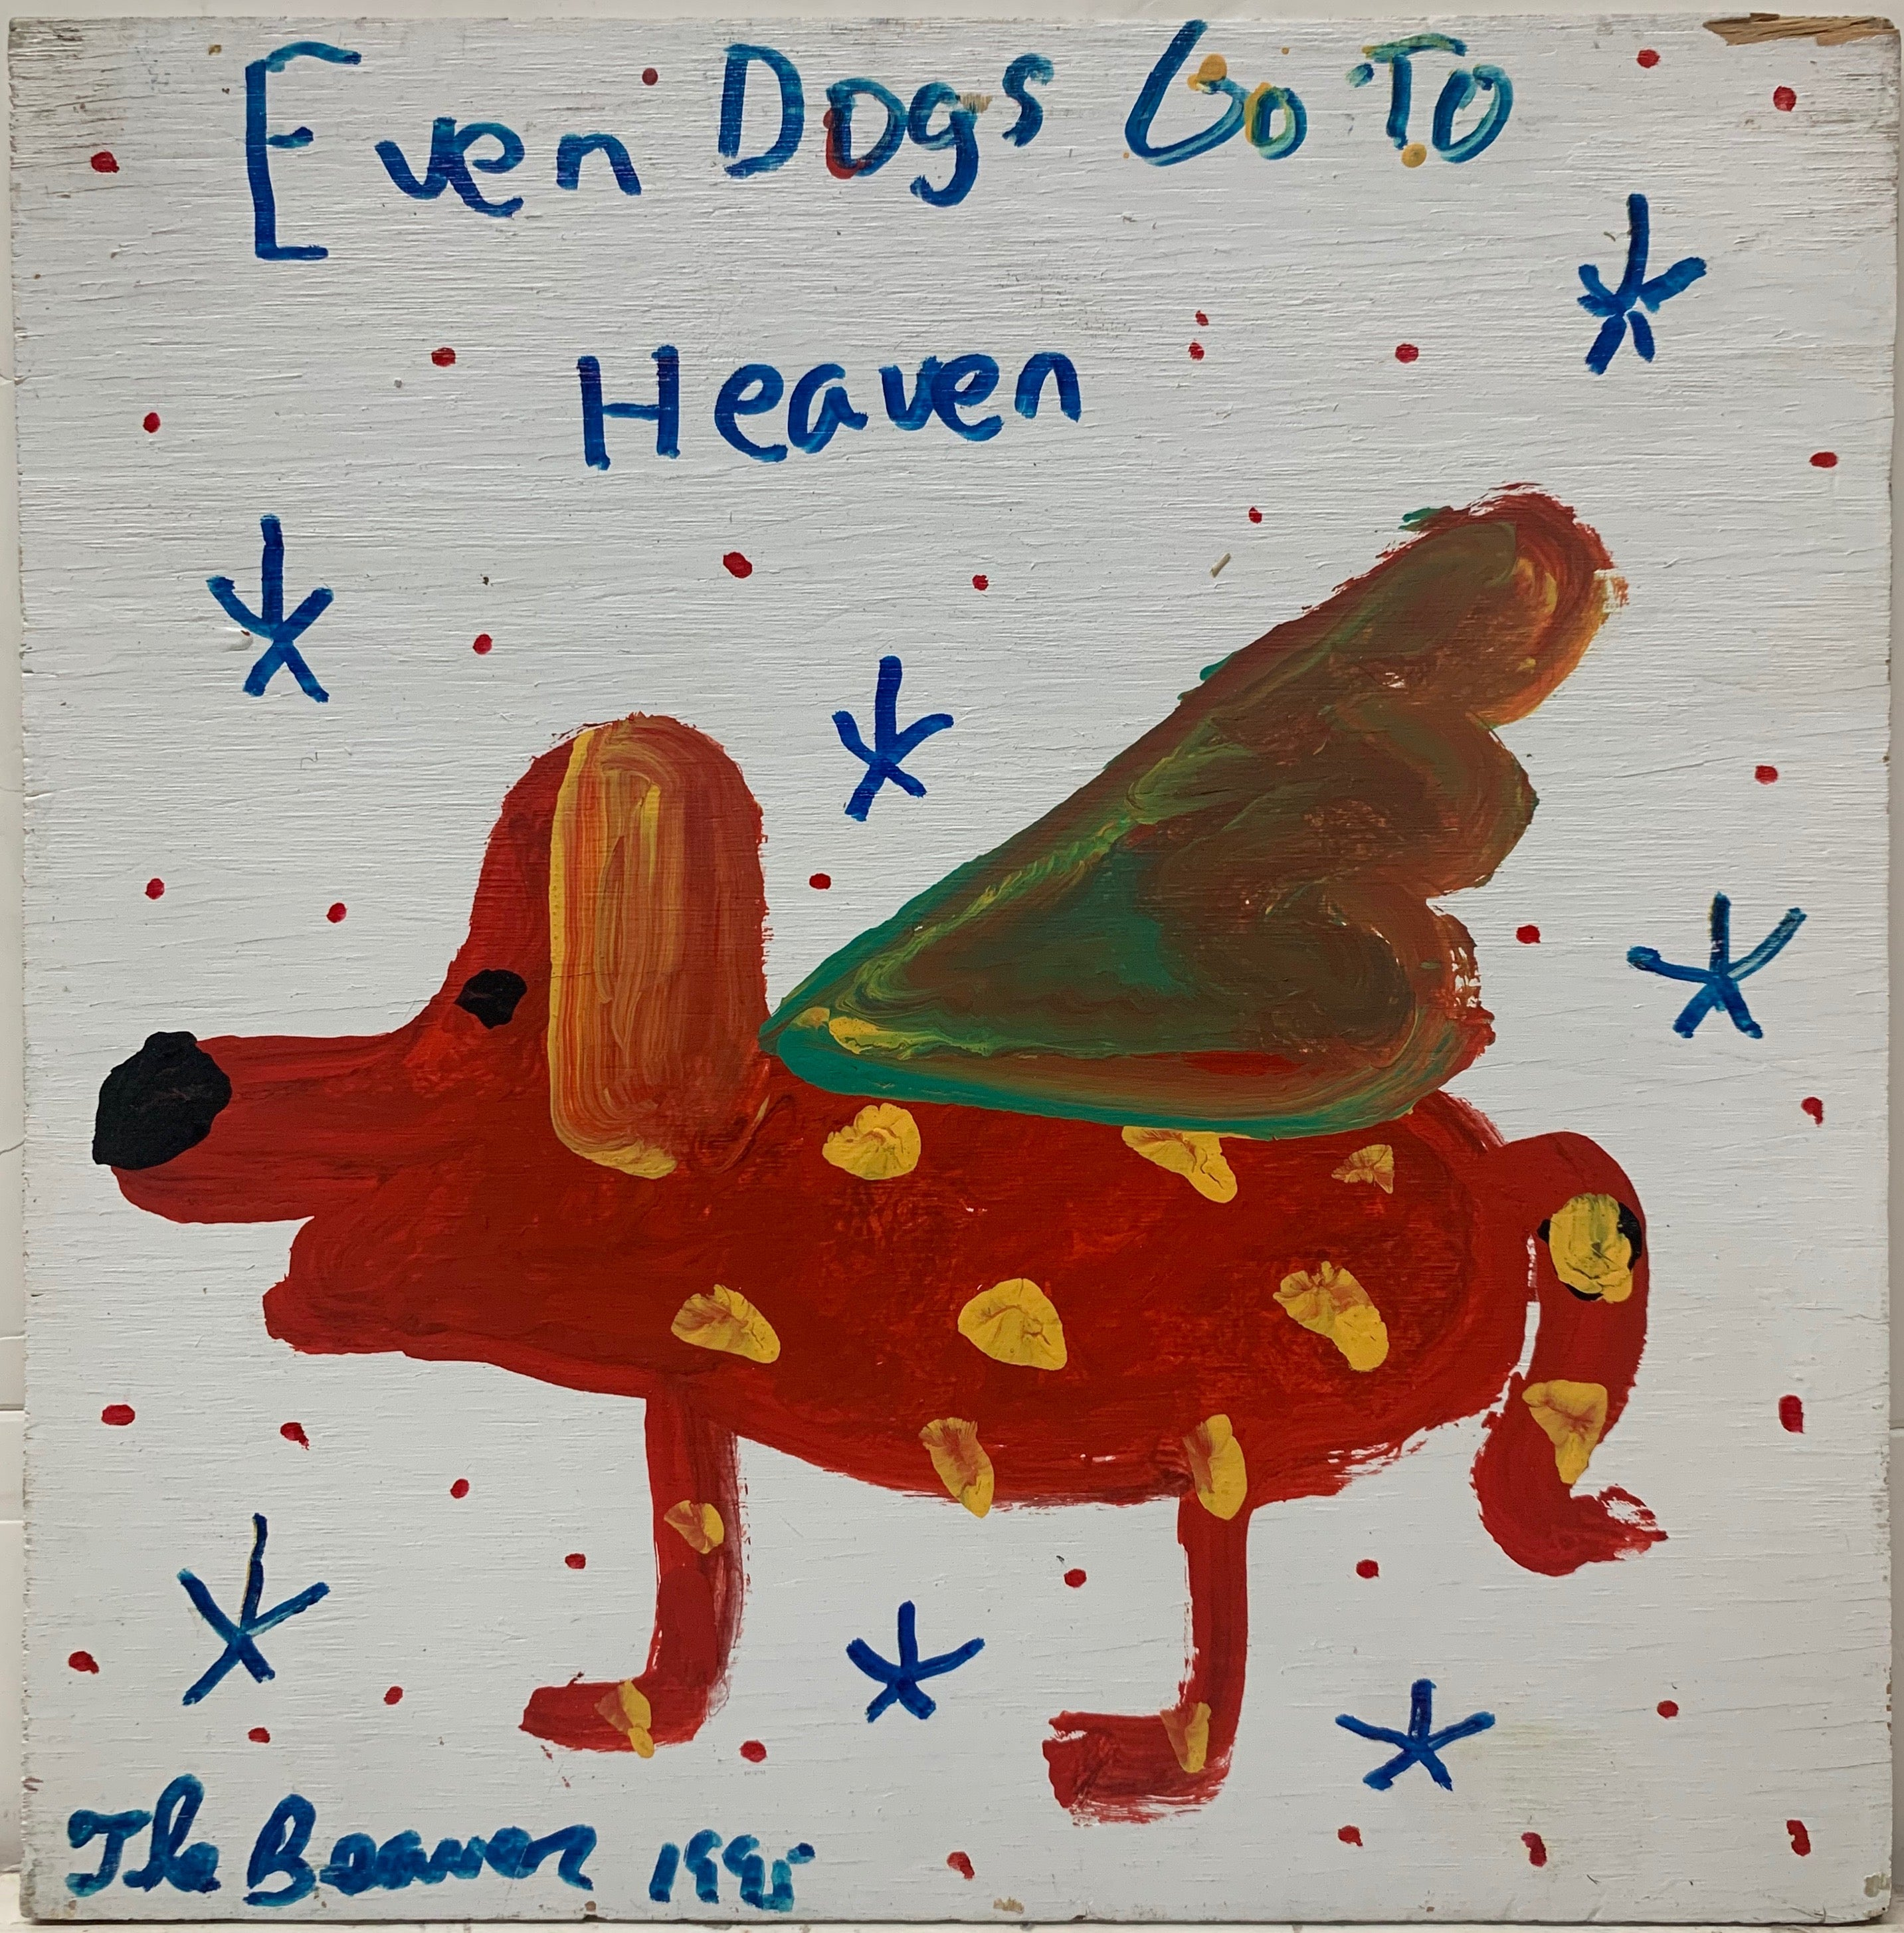 A painting by the Beaver of a red dog with green wings and yellow polka-dots flying in a sky with blue stars.